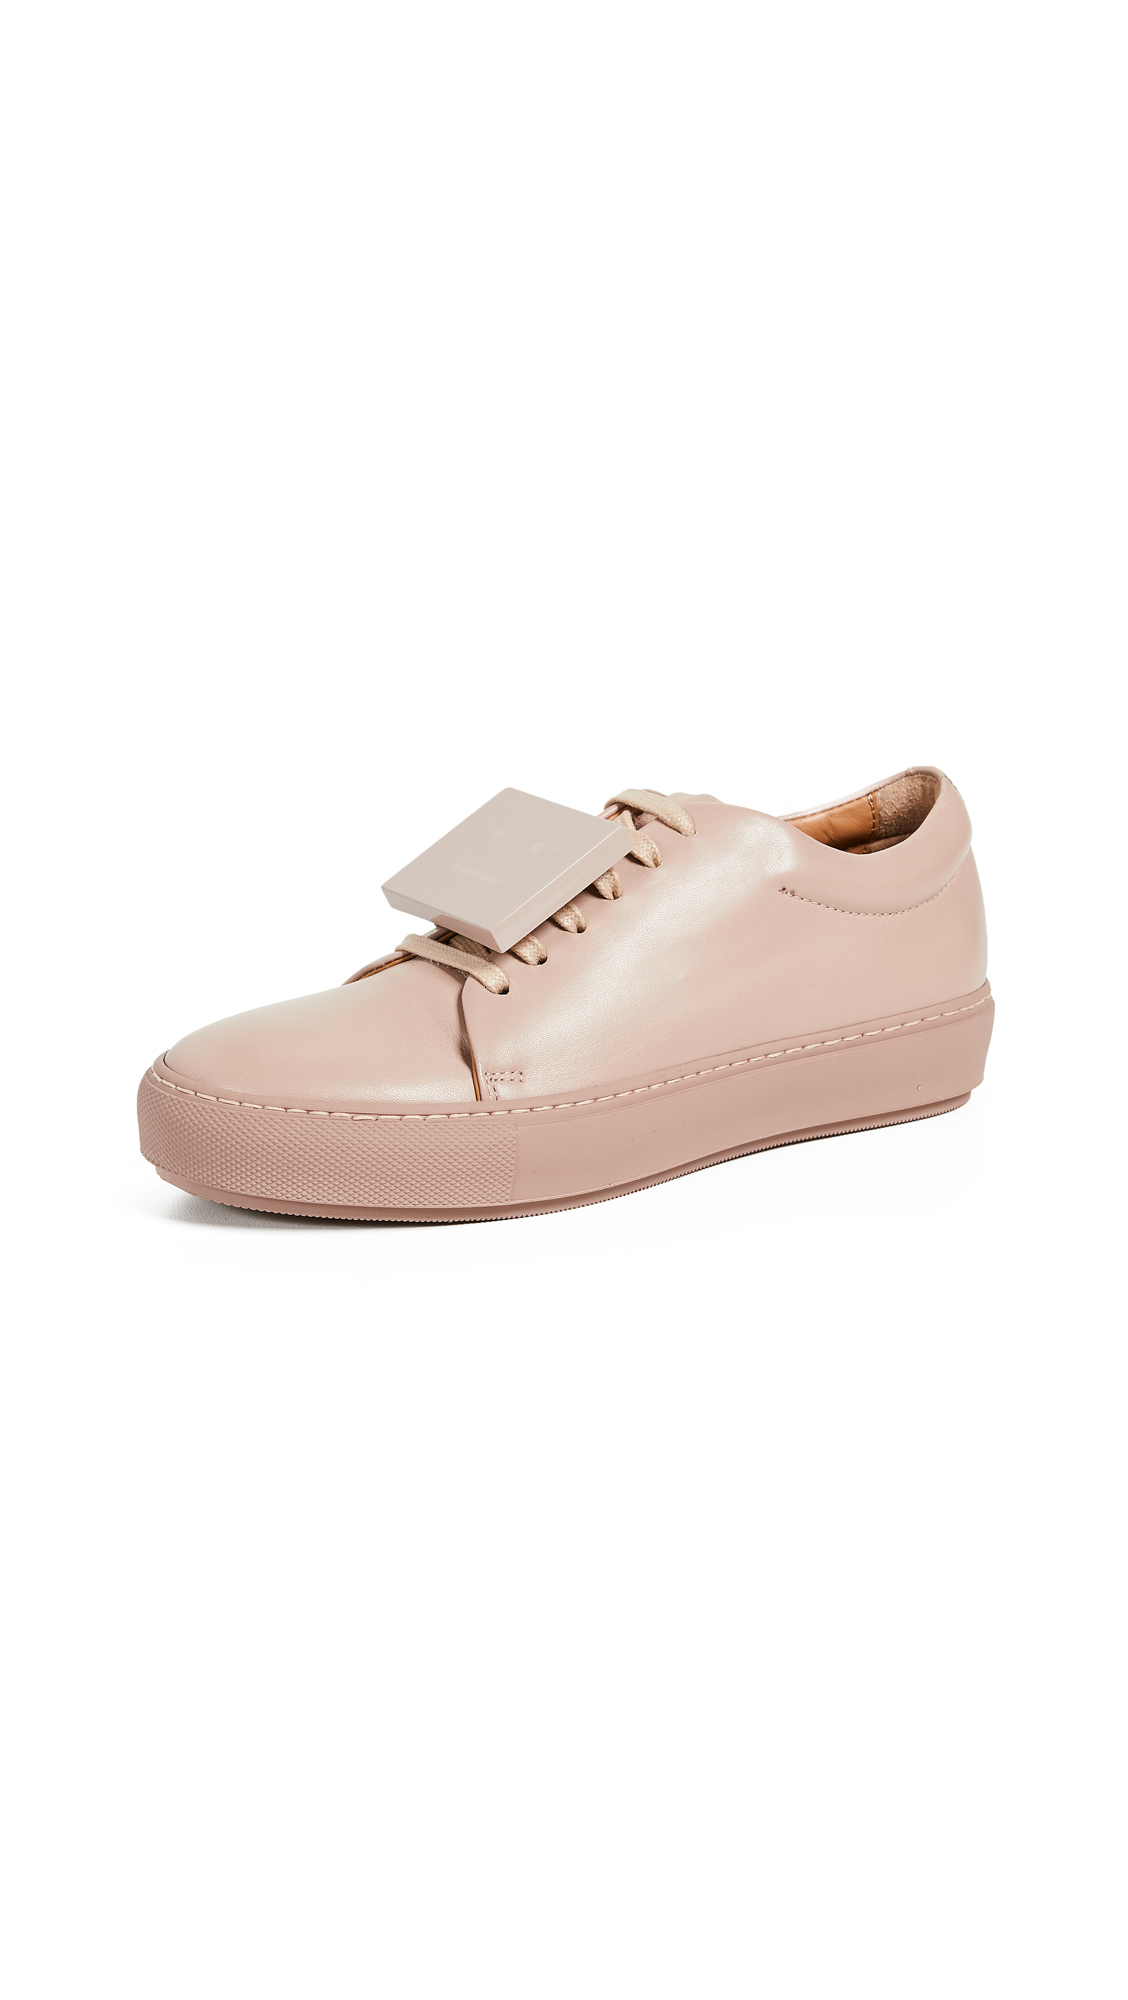 Acne Studios Adriana Turnup Sneakers - Dusty Pink